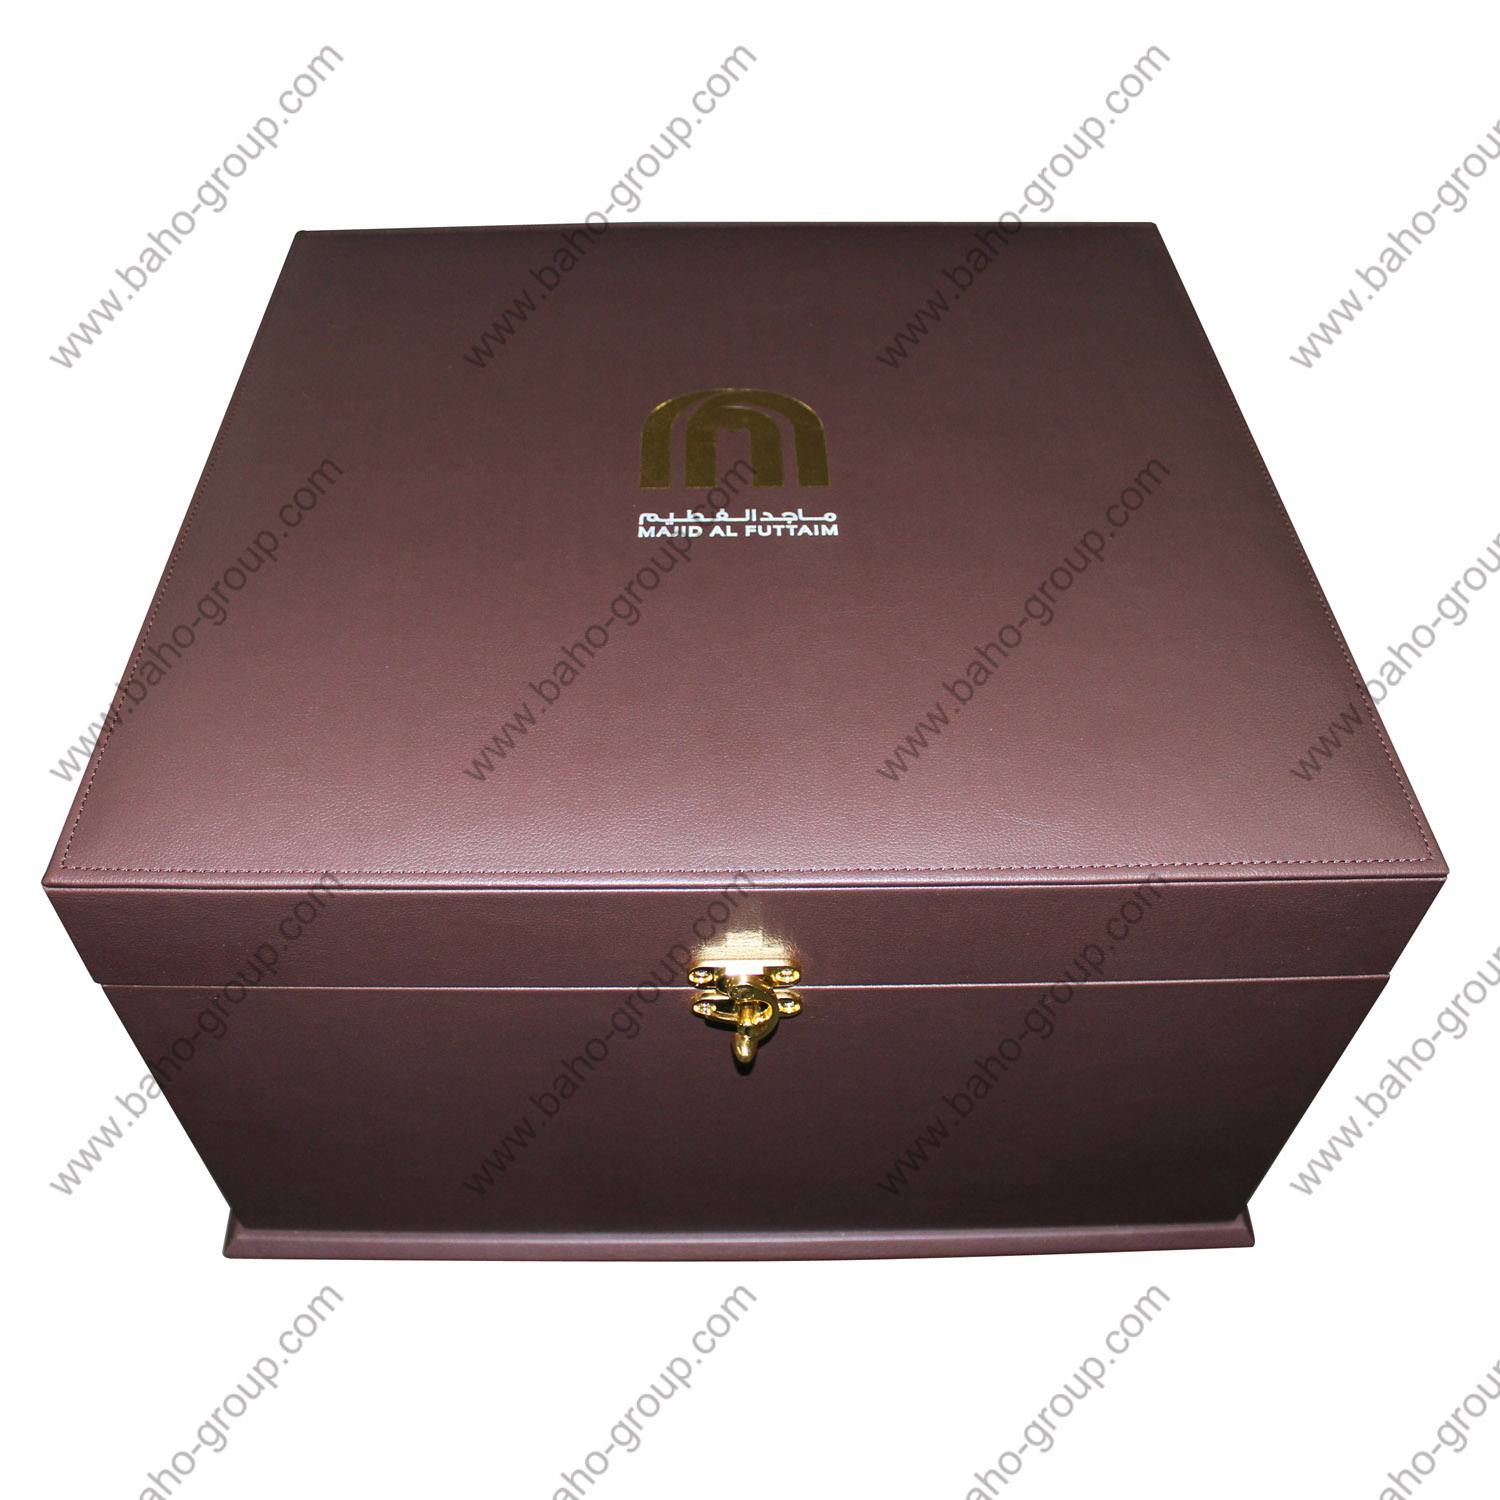 MAJID AL FUTTAIM VIP PU LEATHER GIFT BOX